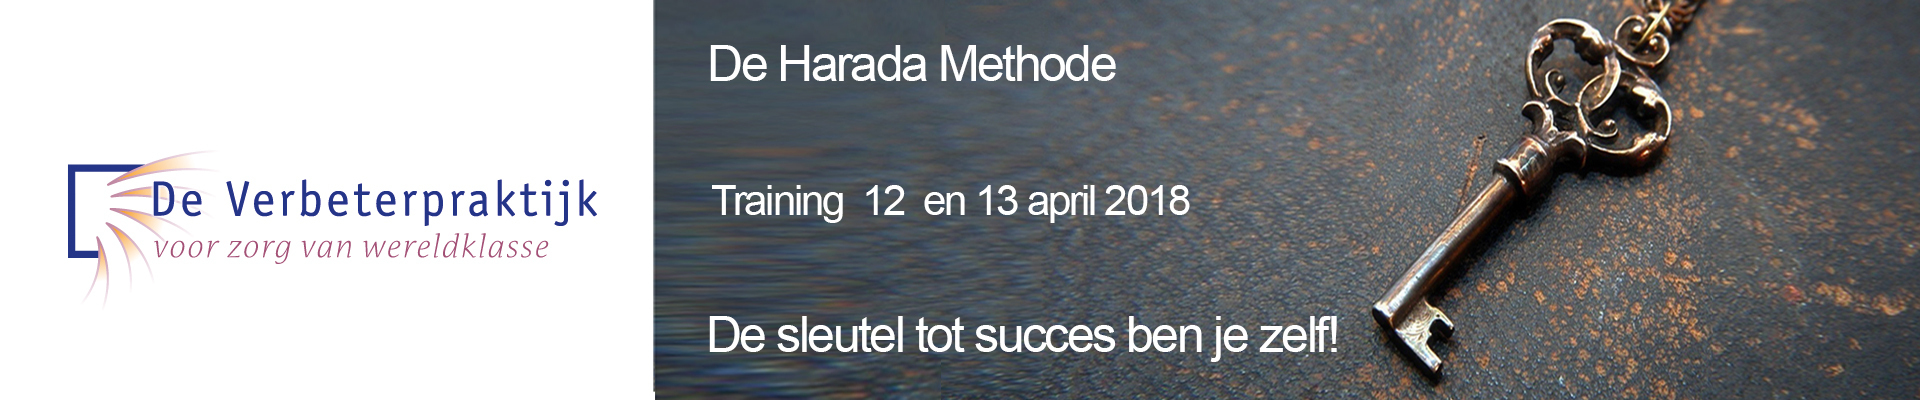 Harada training 12-13 april